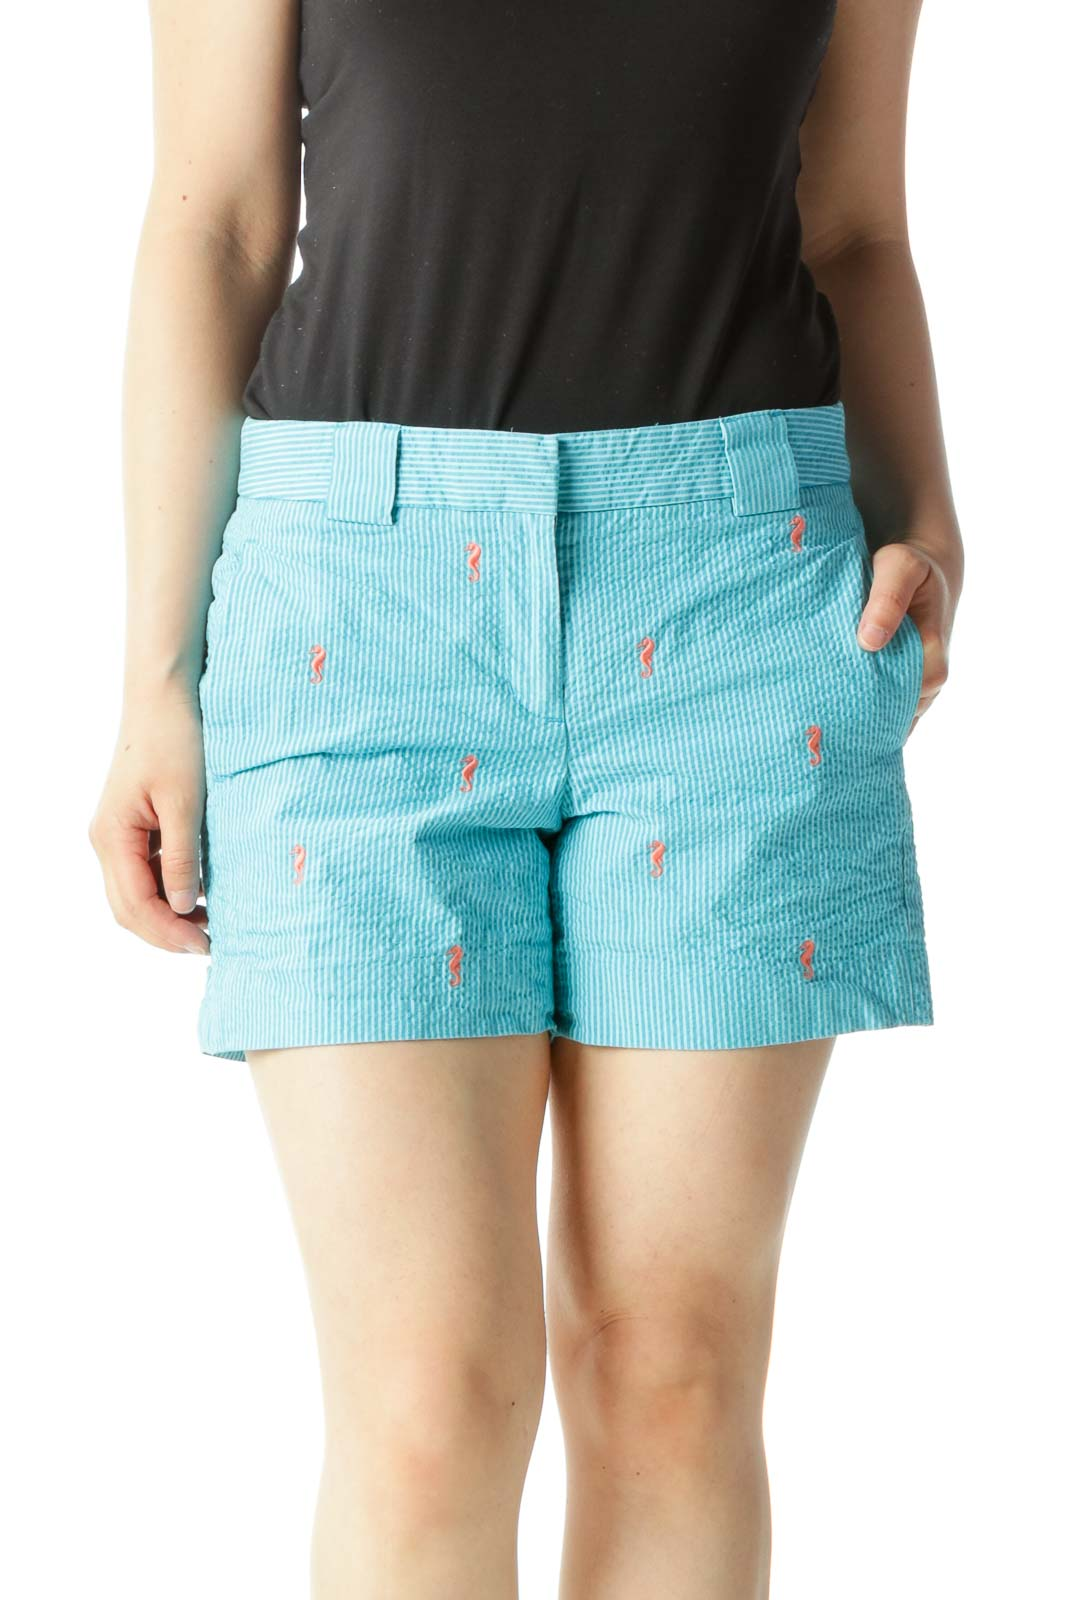 Blue Striped Shorts with Orange Seahorse Pattern